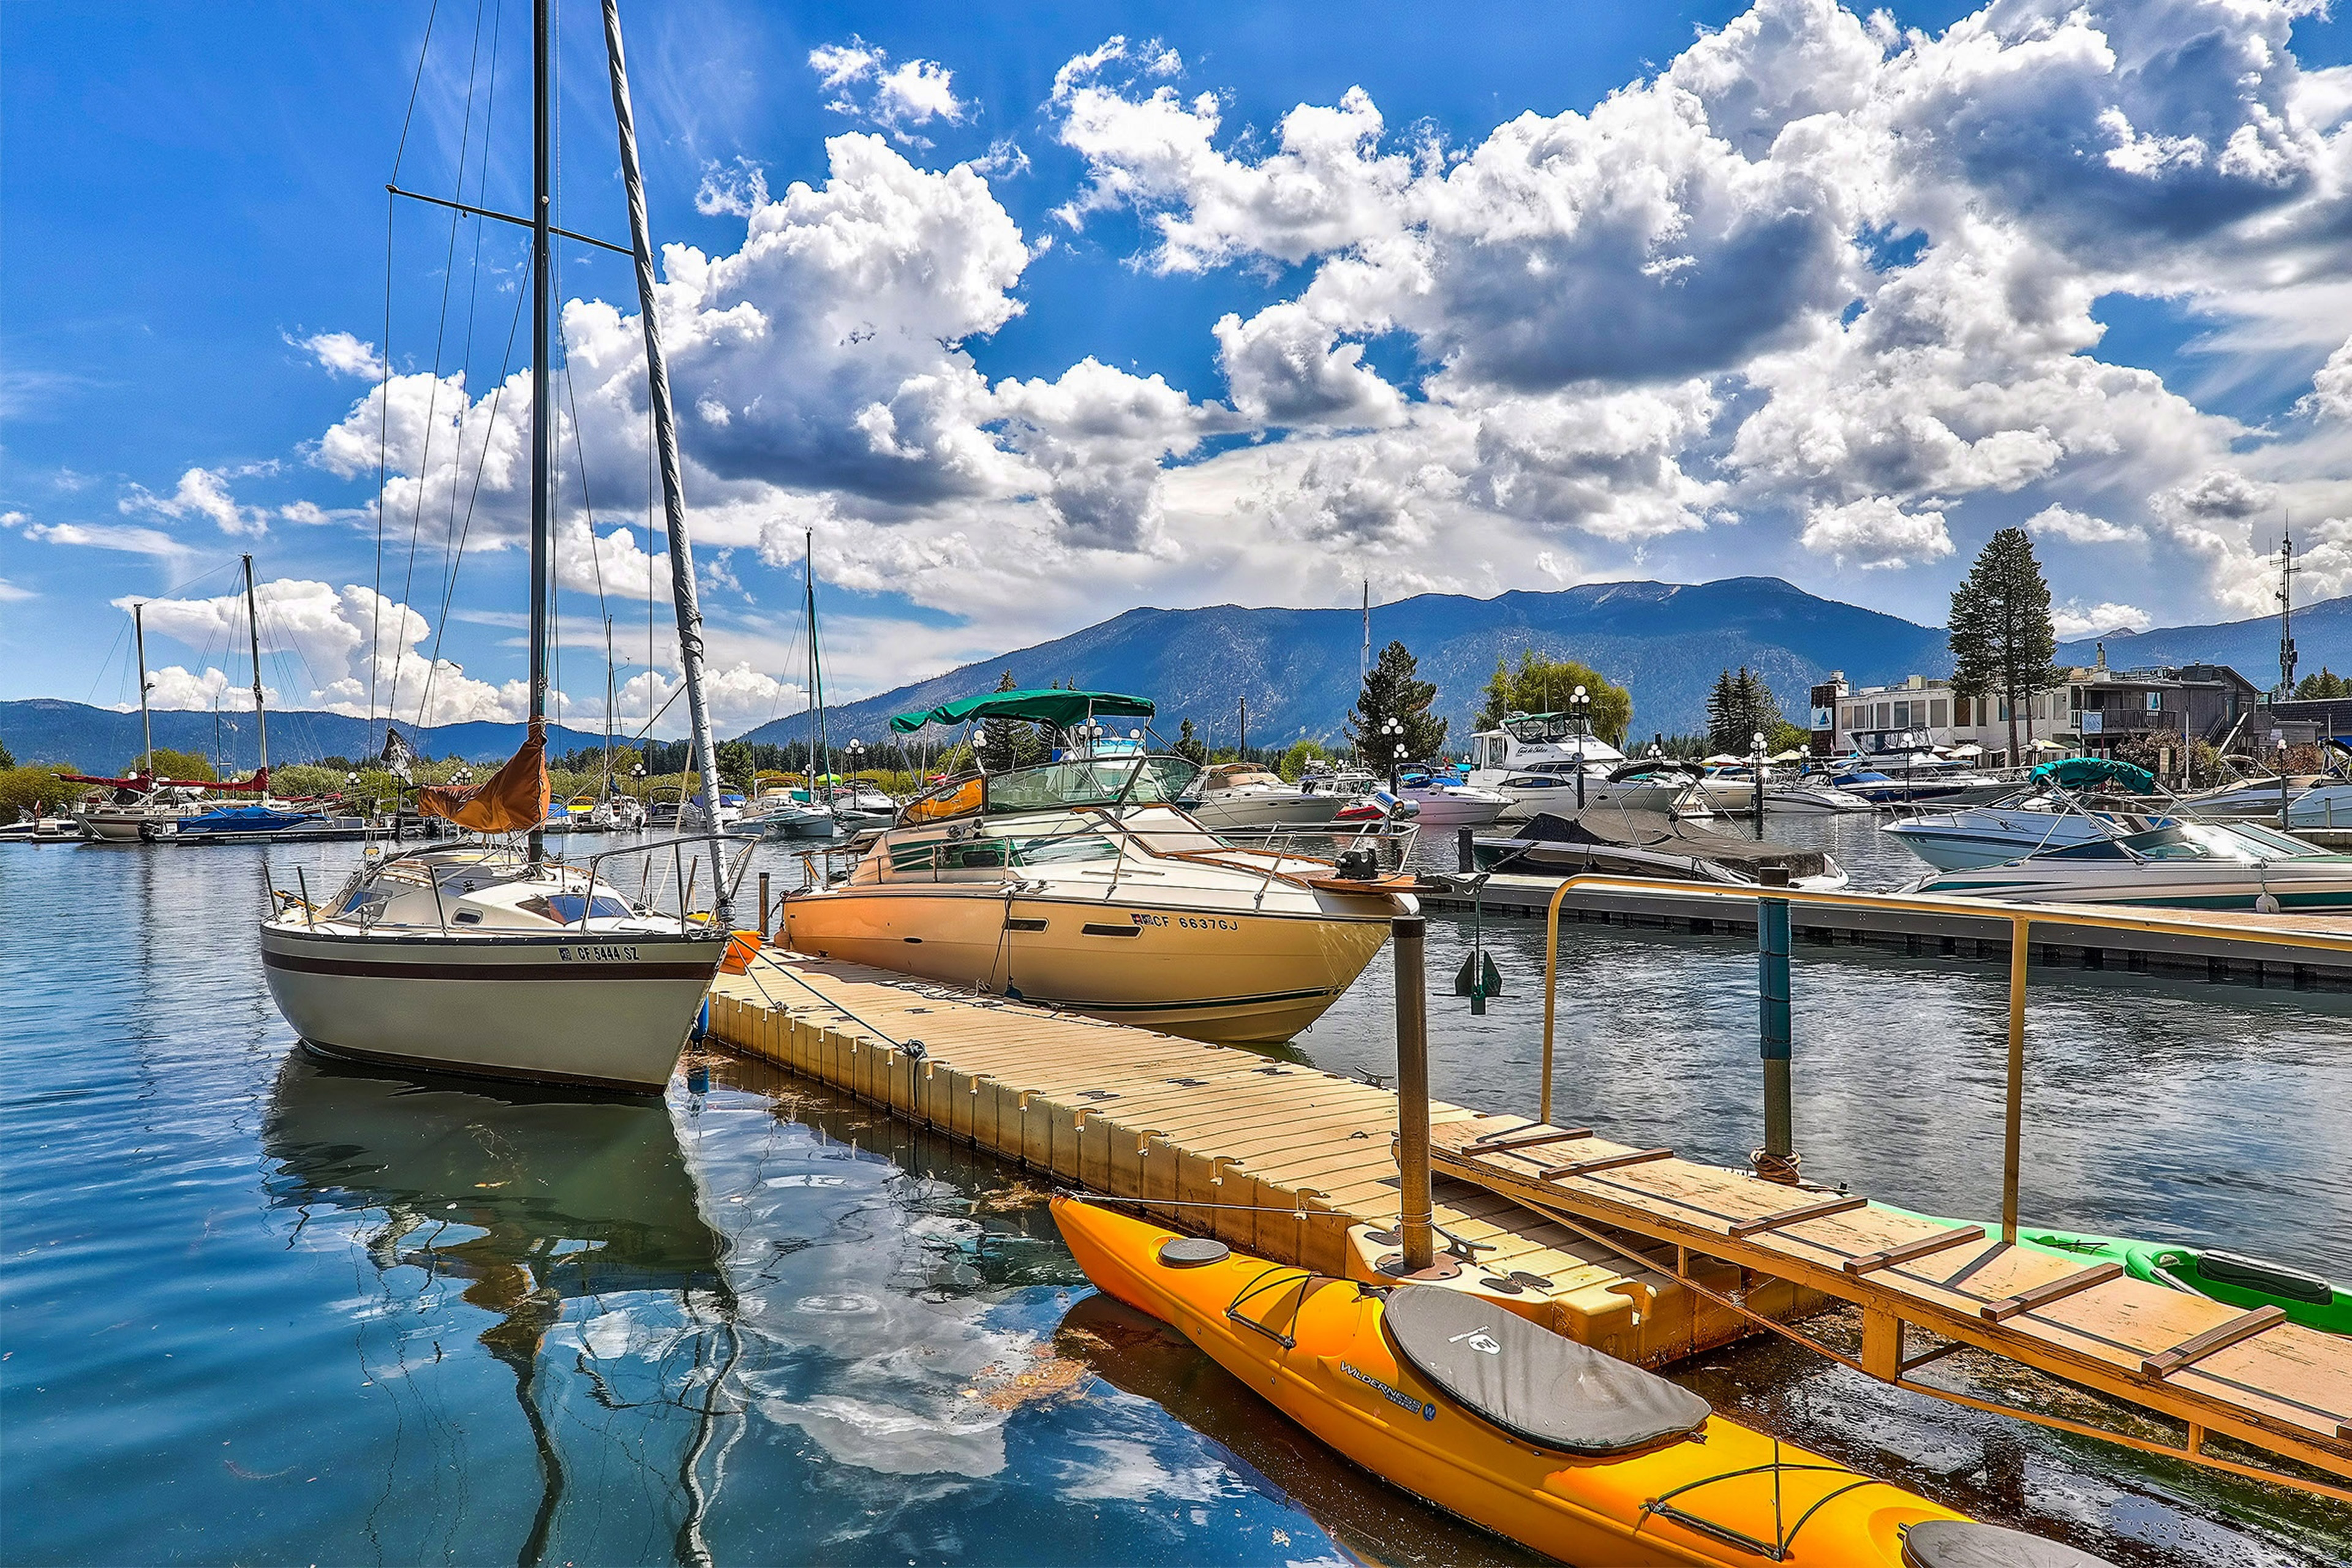 Last Minute South Lake Tahoe Vacation Rental Deals and Discounts Save Big